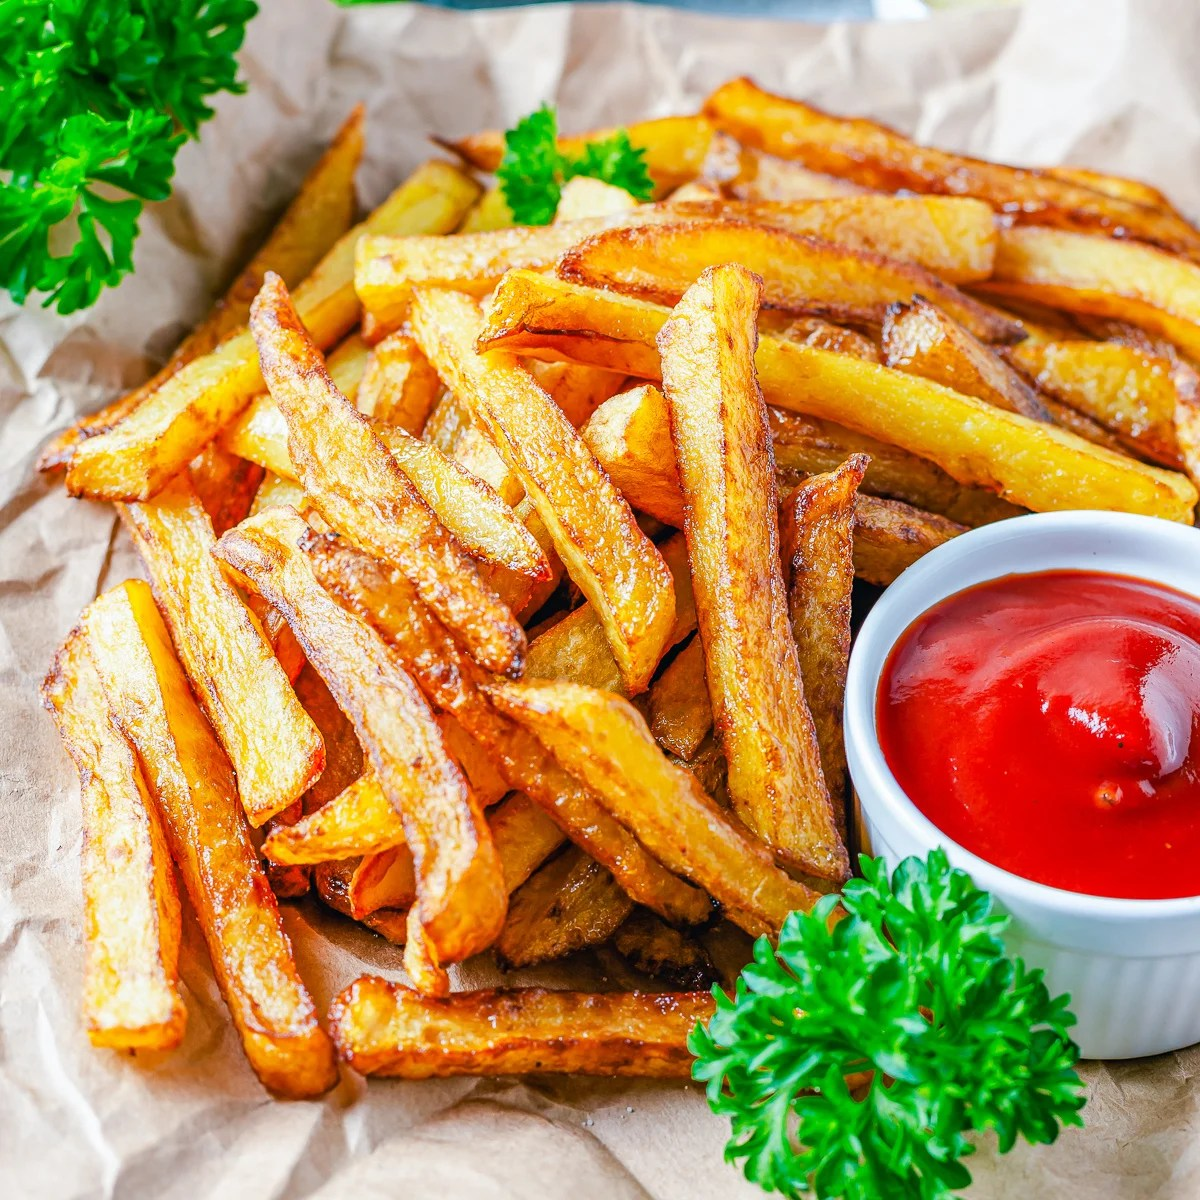 Square image of French Fries on brown parchment with parsley and ketchup.